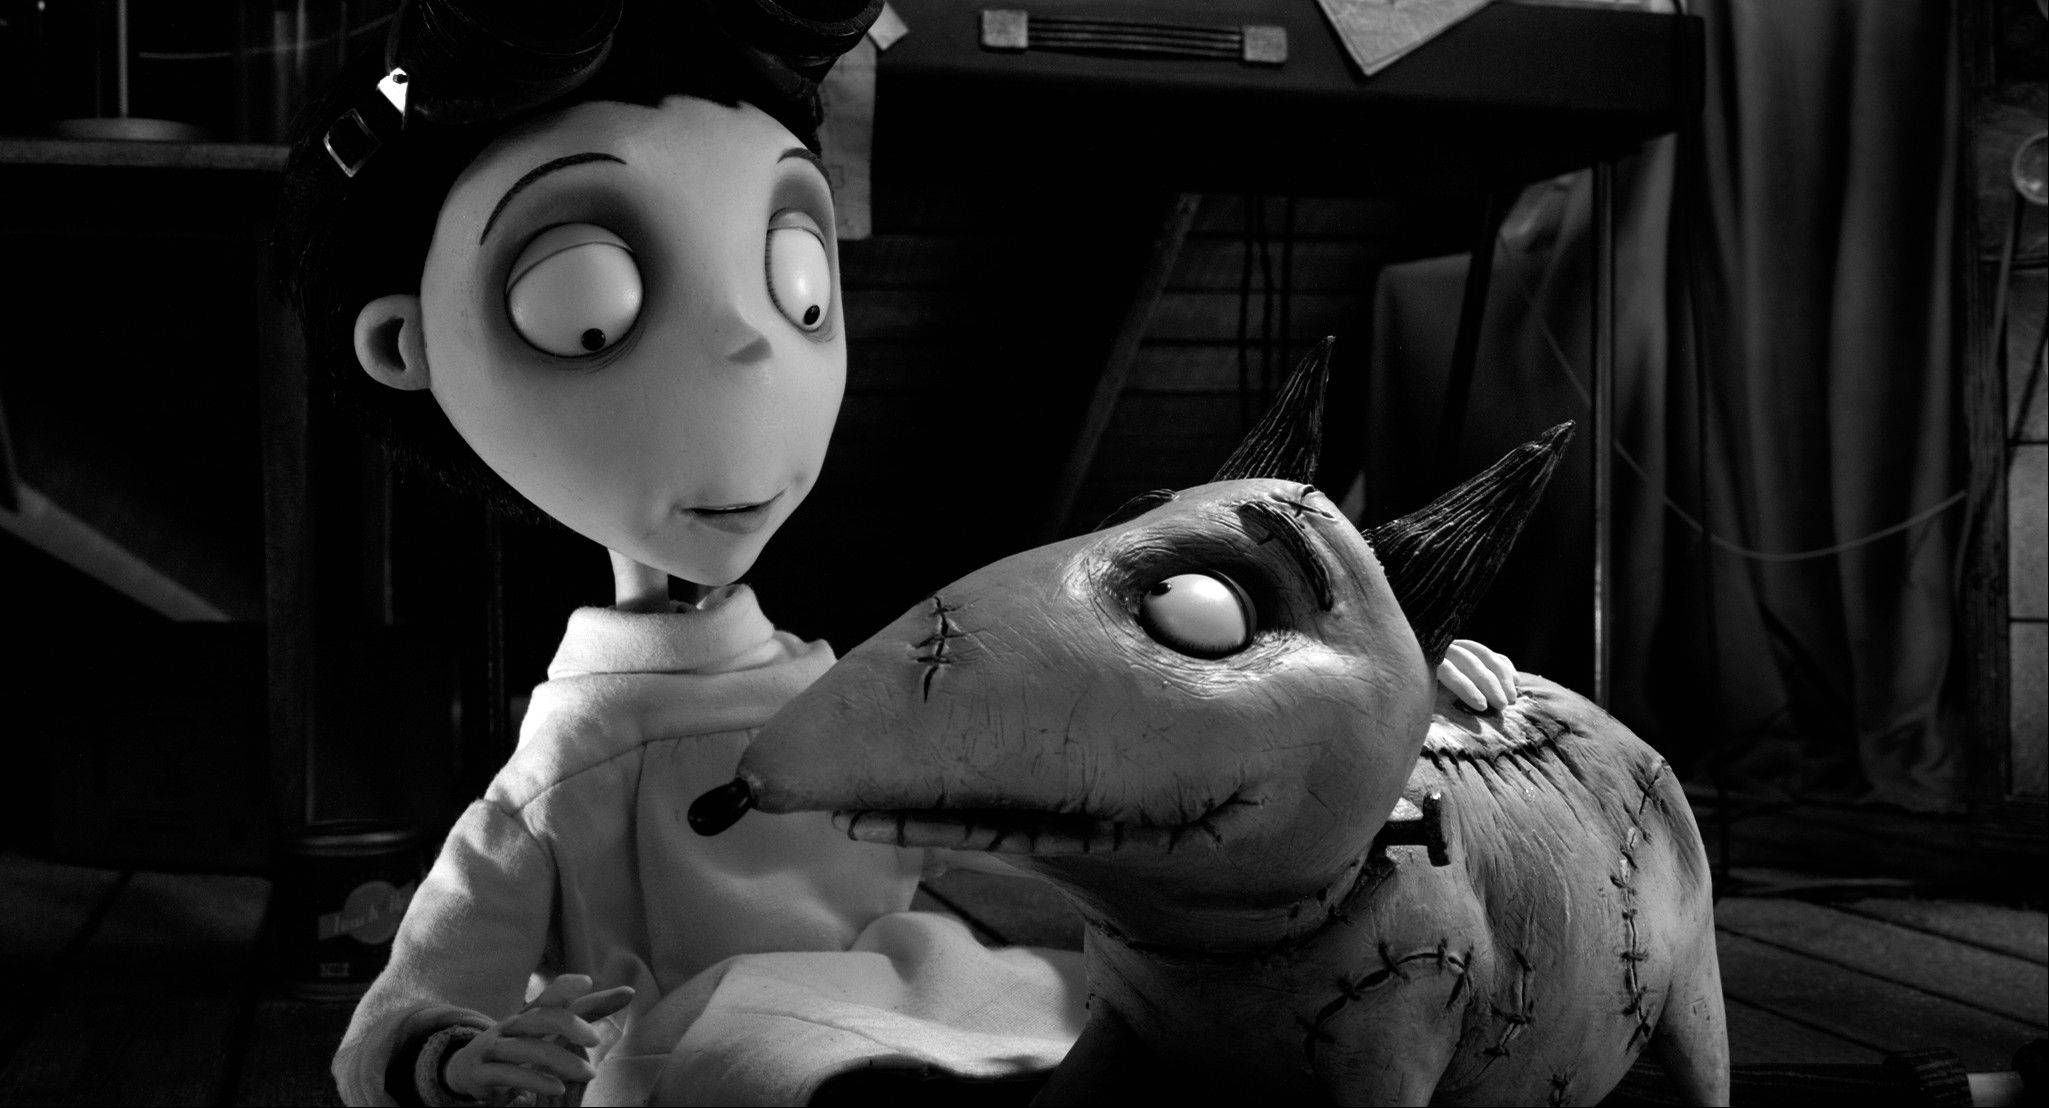 Burton's scary 'Frankenweenie' a triumph of black-and-white stop-motion animation